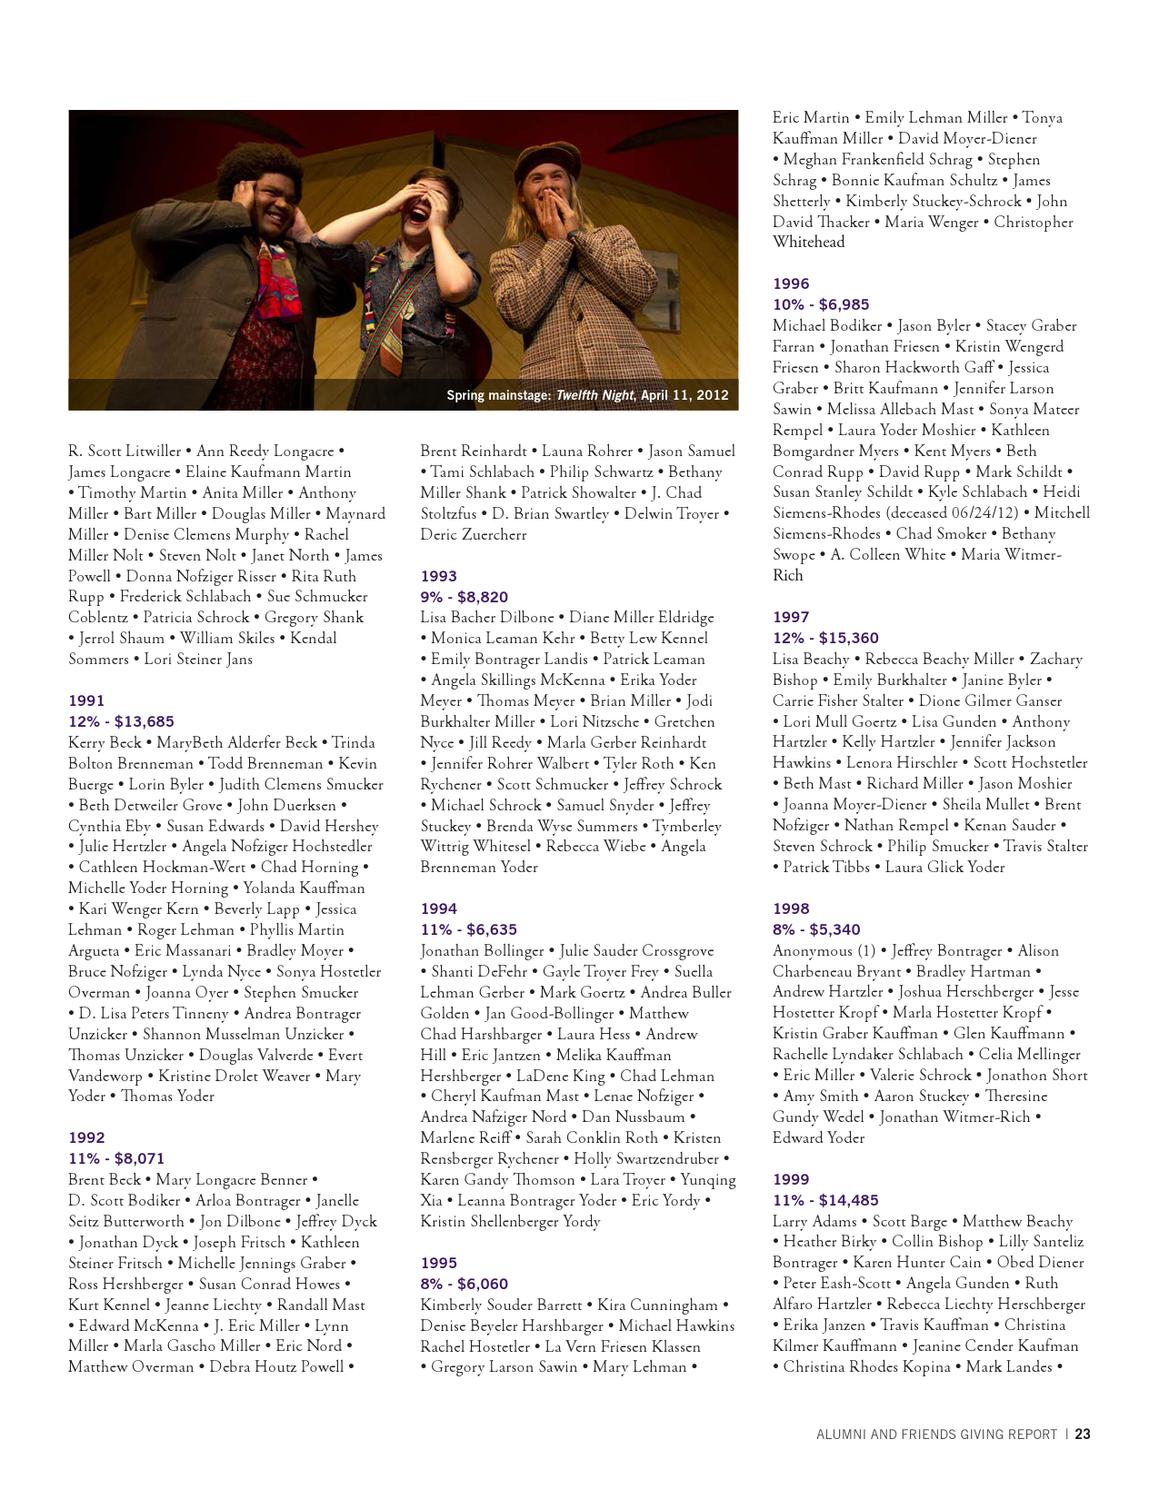 GC Annual Report 2011-2012 by Goshen College - issuu